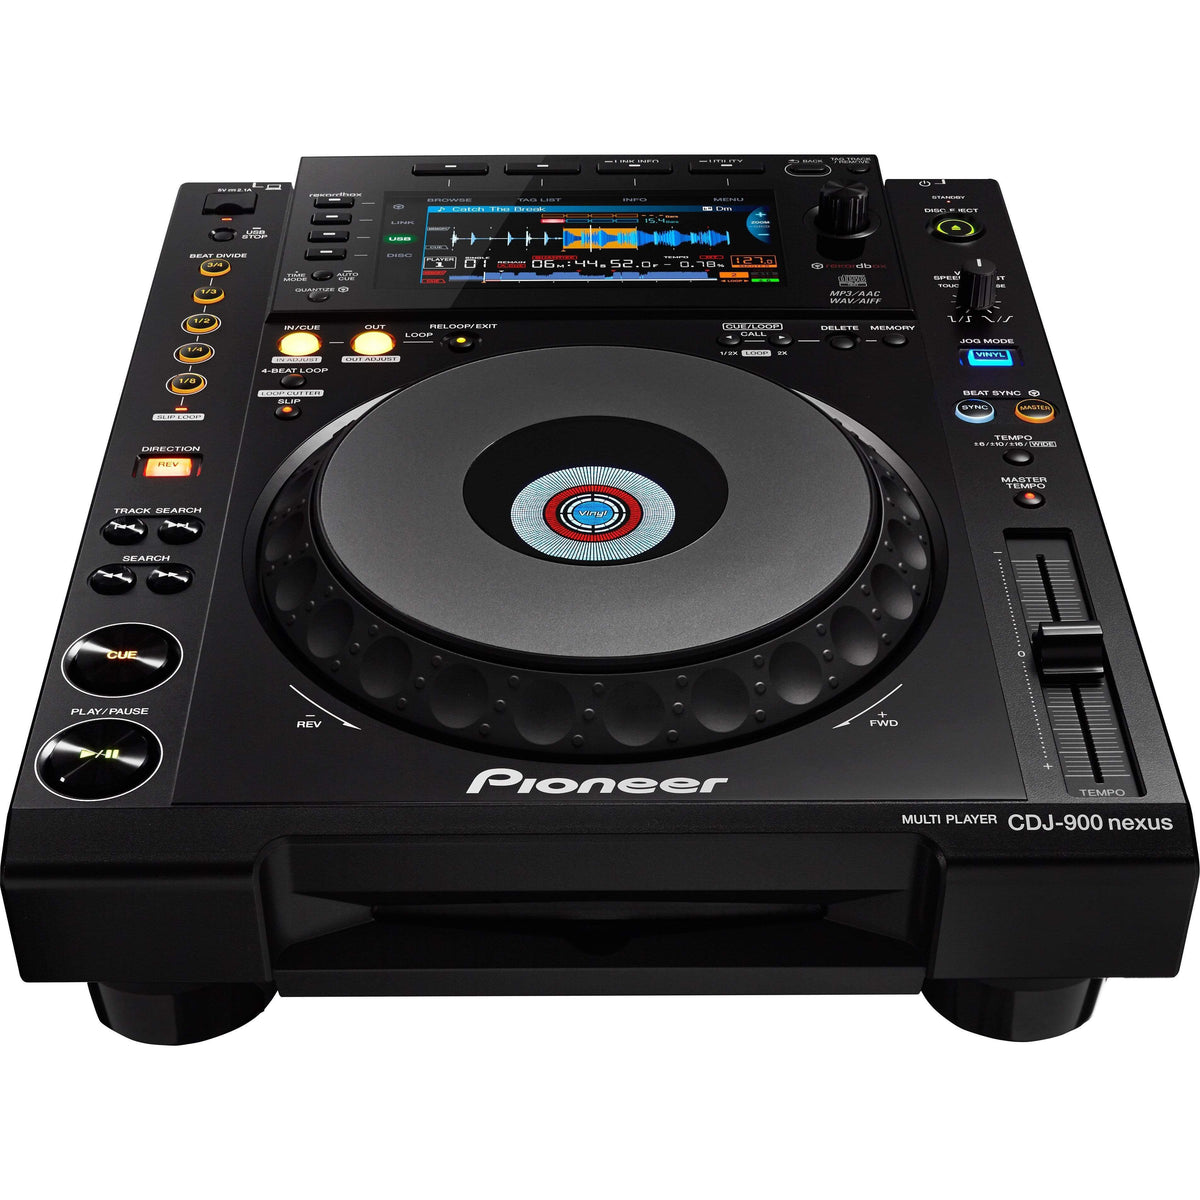 vendor-unknown DJ Equipment Pioneer DJ CDJ-900NXS Pro-DJ multi player